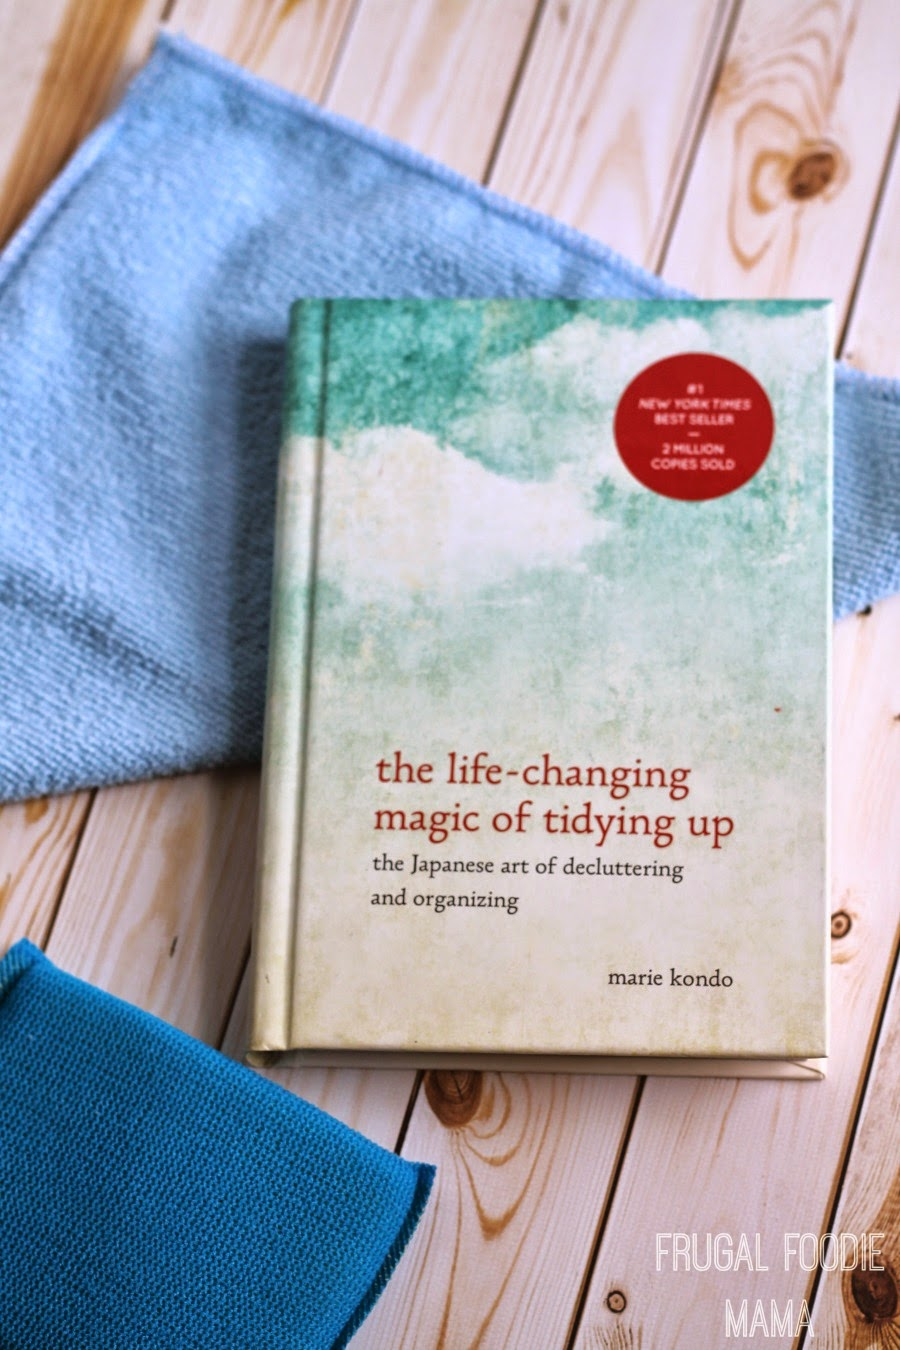 Enter to win a copy of The Life-Changing Magic of Tidying Up